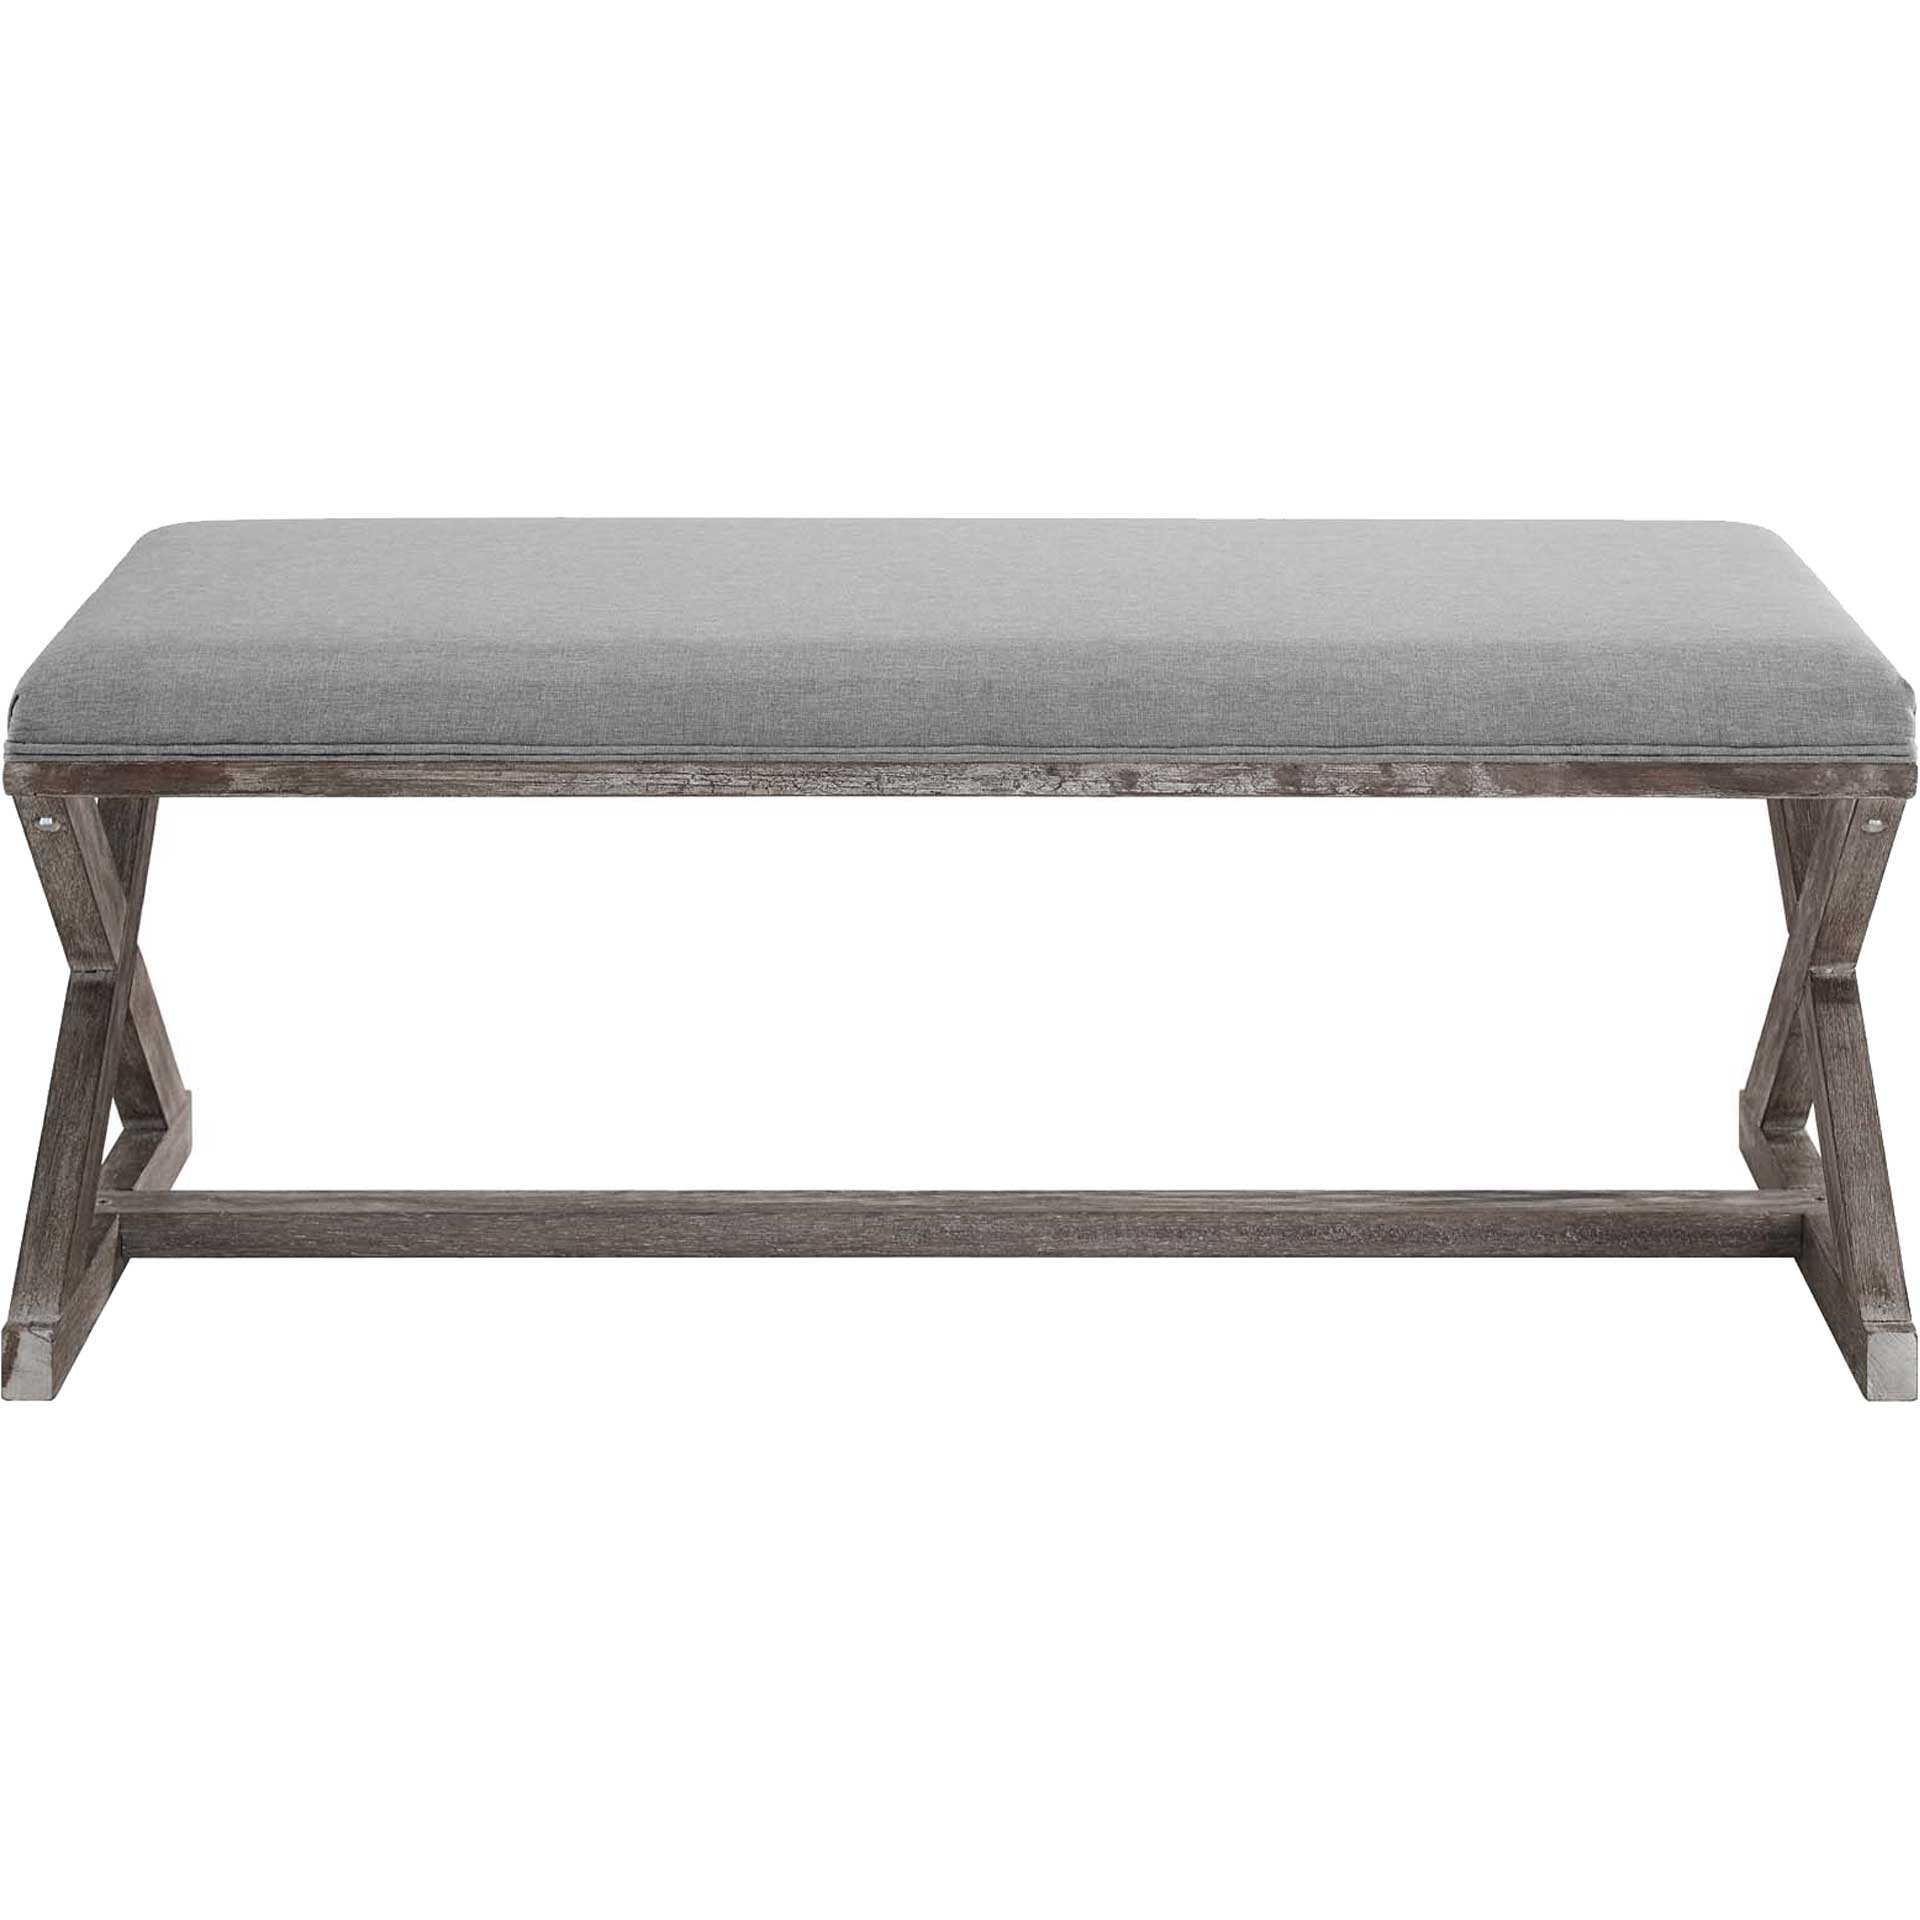 Park X-Brace Fabric Bench Light Gray